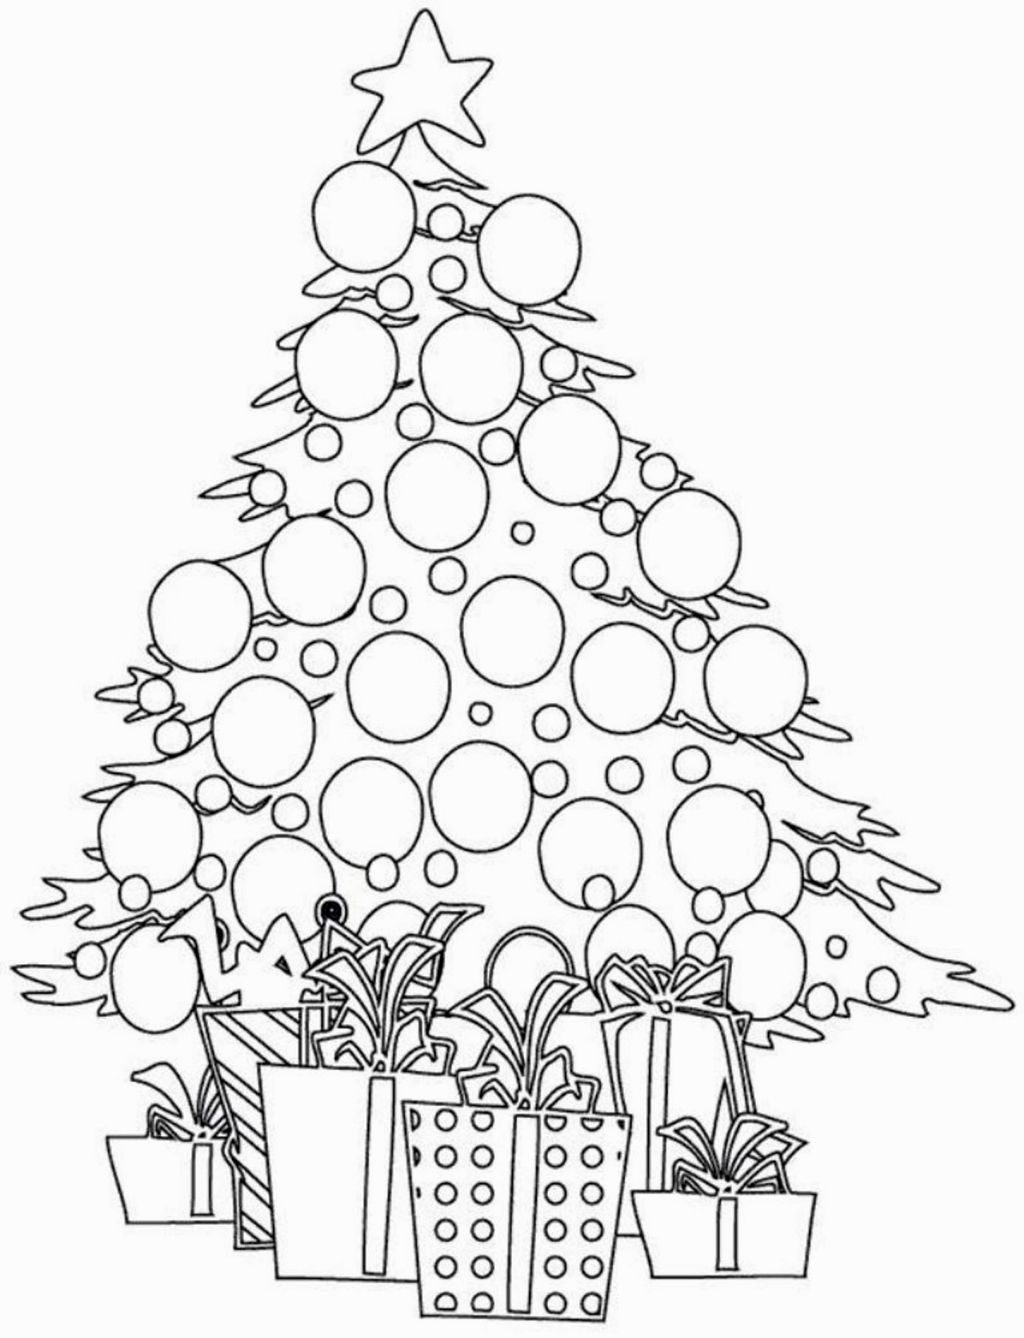 Small Christmas Coloring Pages Christmas Tree Coloring Page Printable Christmas Coloring Pages Mandala Coloring Pages